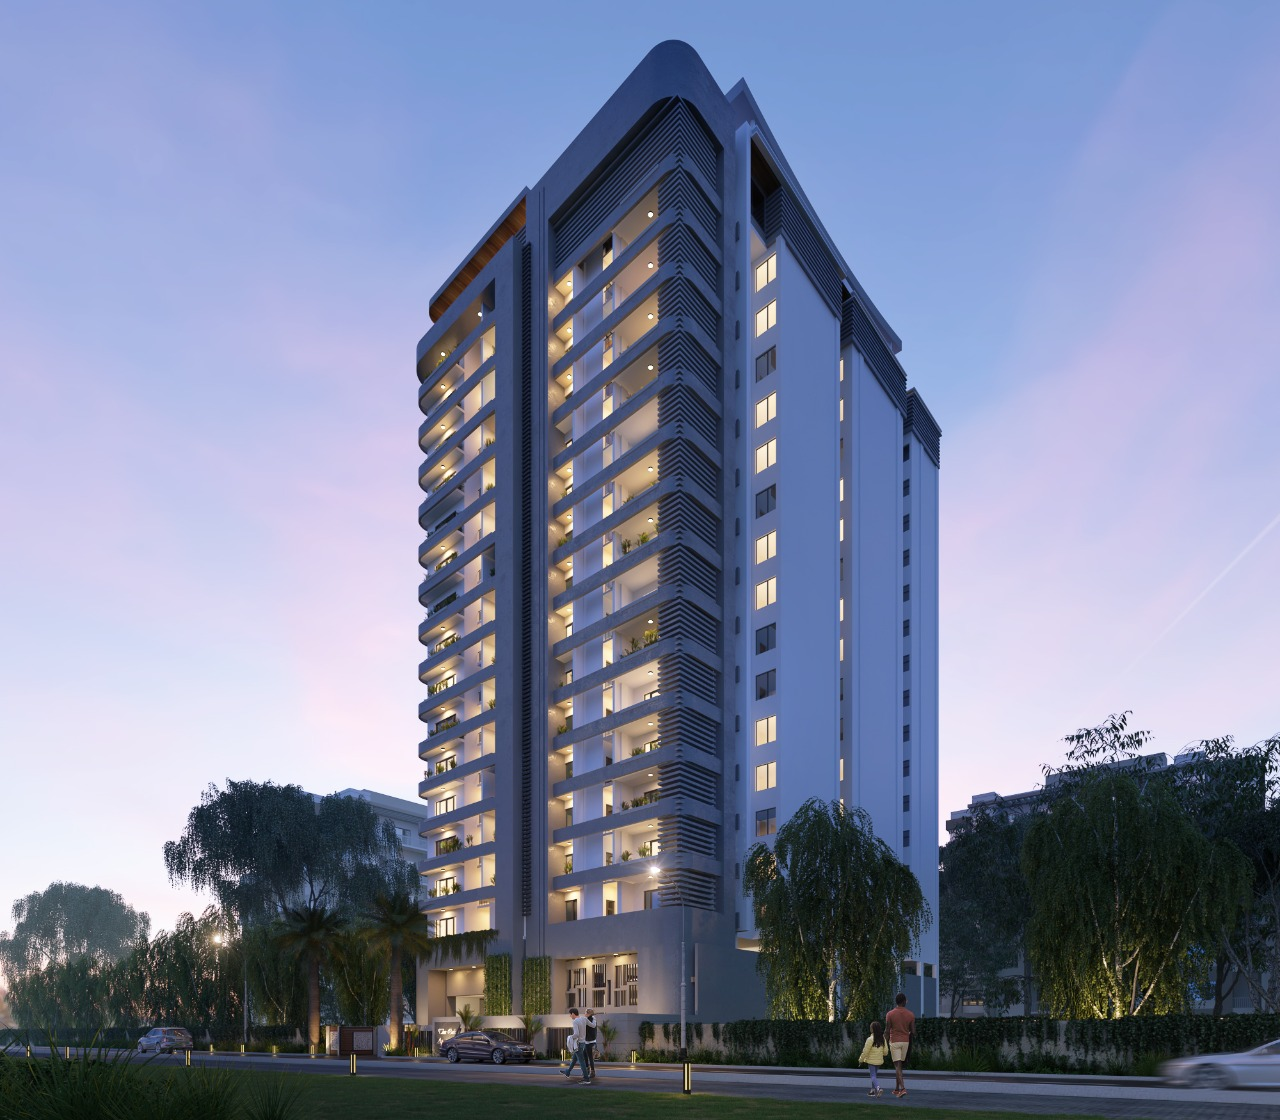 New Development of 60 units in 19 floors of 3 and 4 Bedroom Apartments in Westlands on General Mathenge